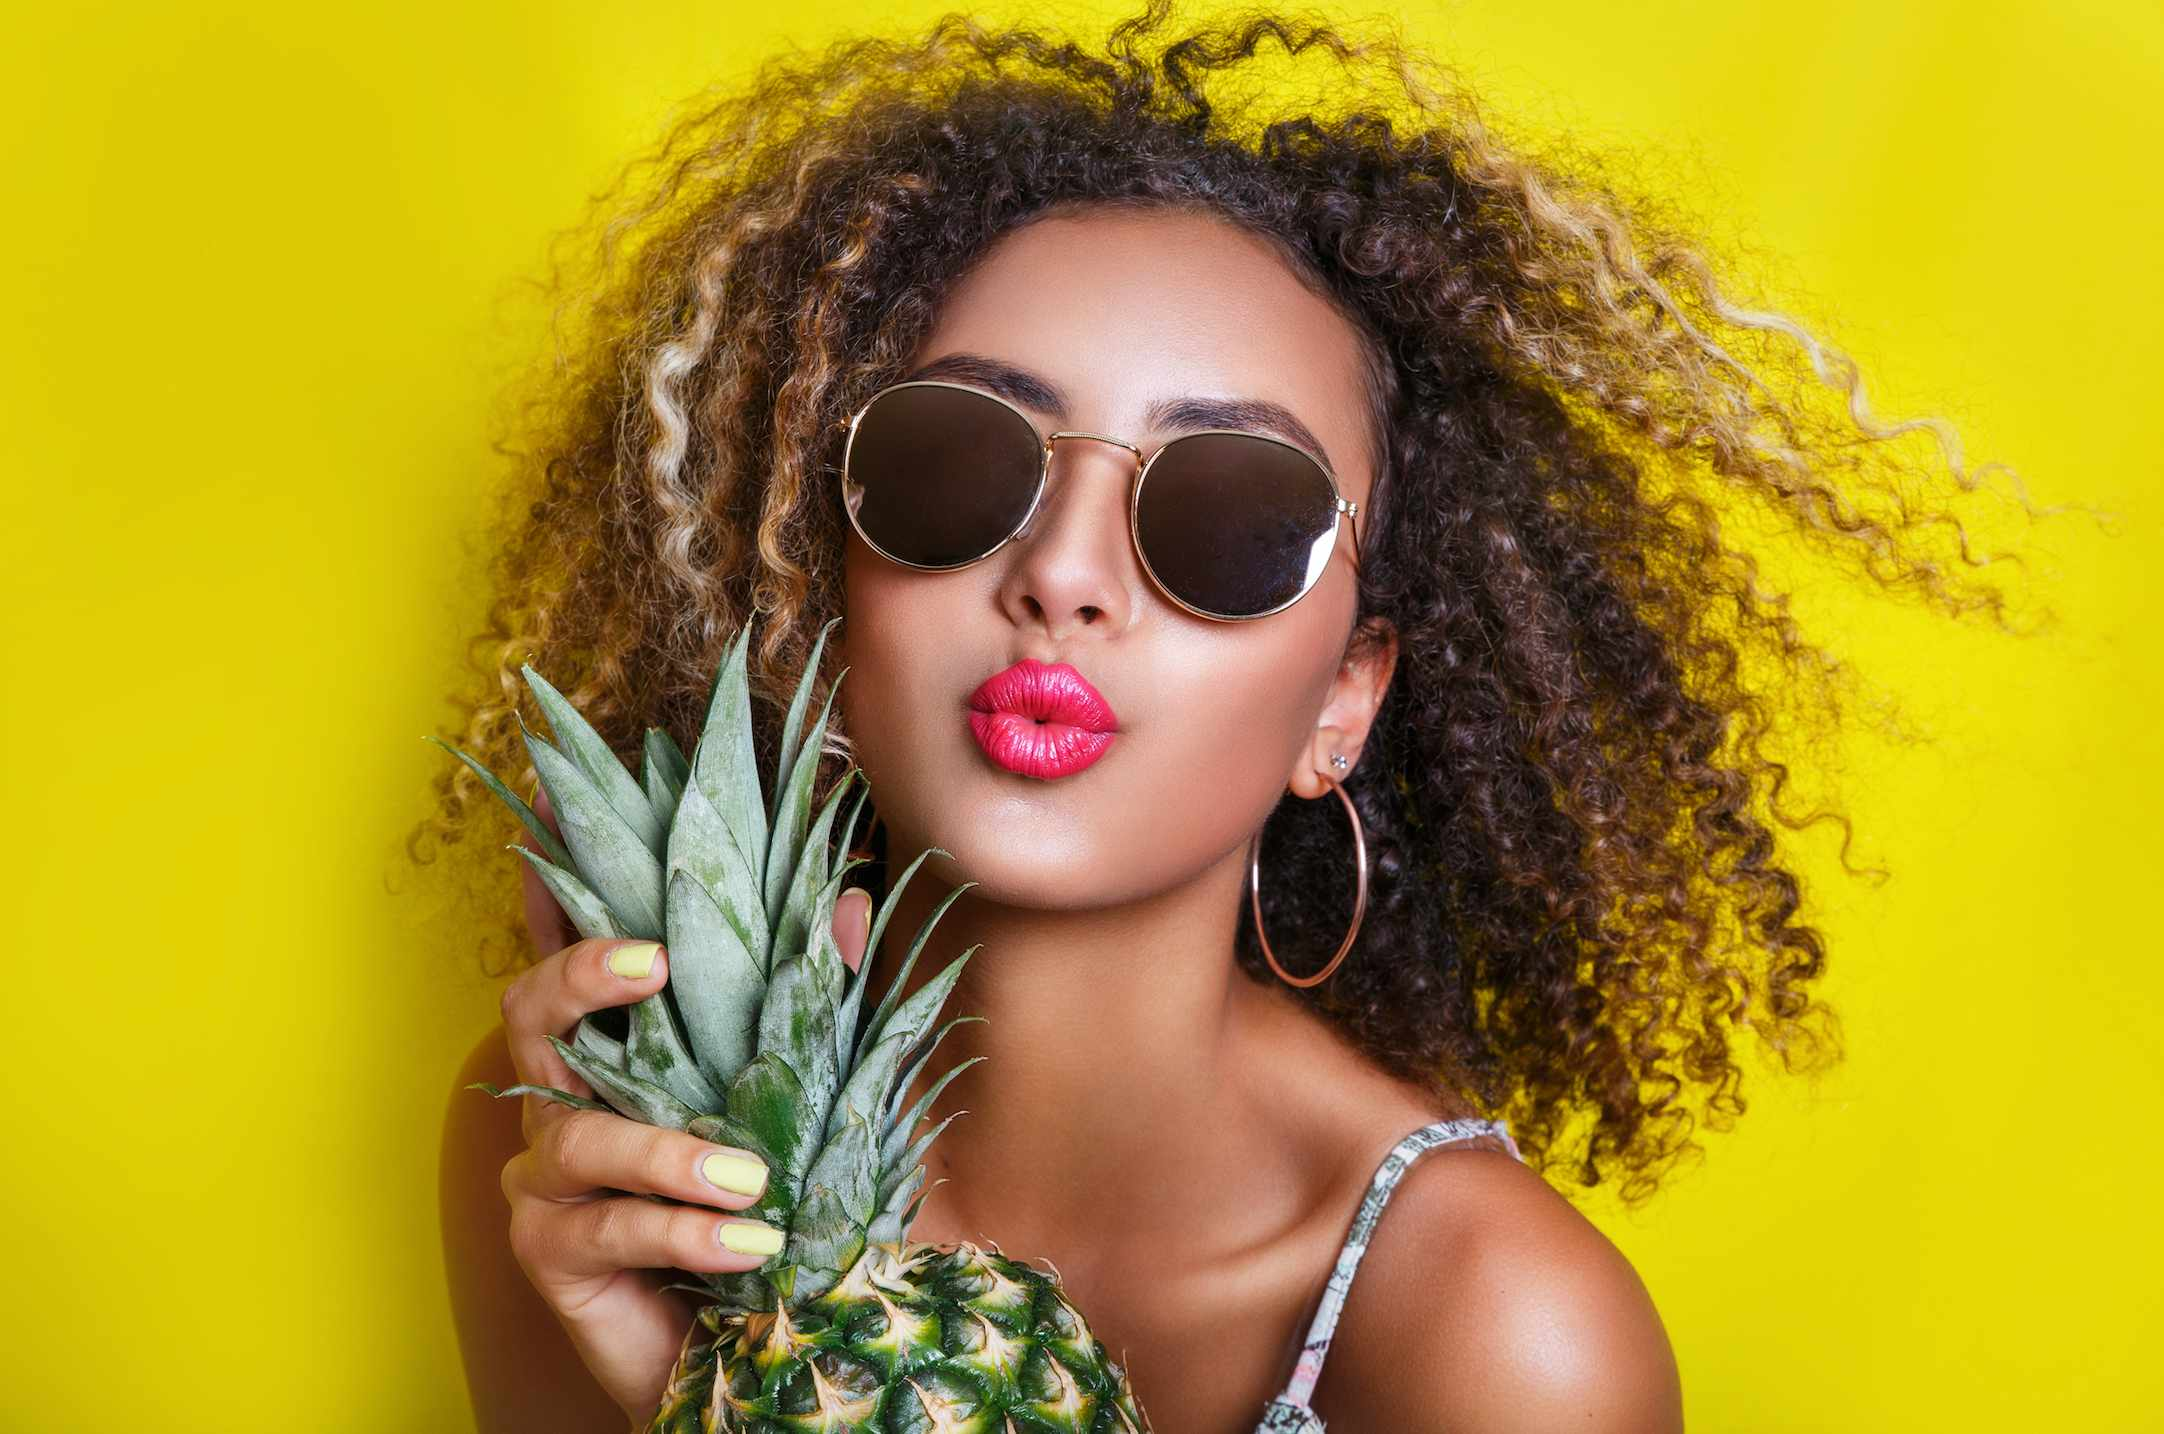 Woman wearing sunglasses holding a pineapple